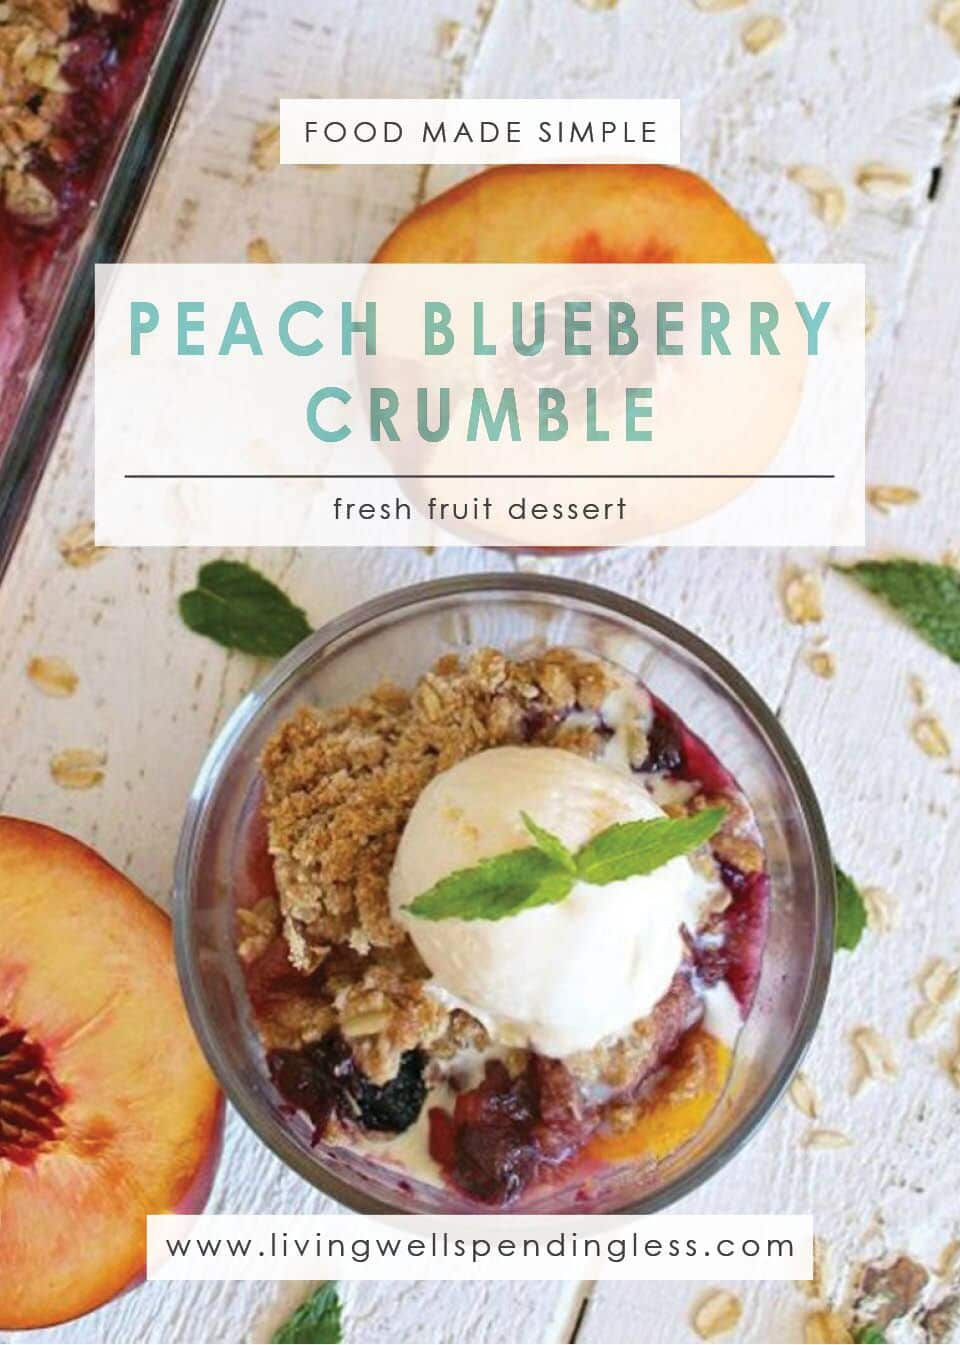 Peach Blueberry Crumble | Dessert | Food Made Simple | Fruit Desserts